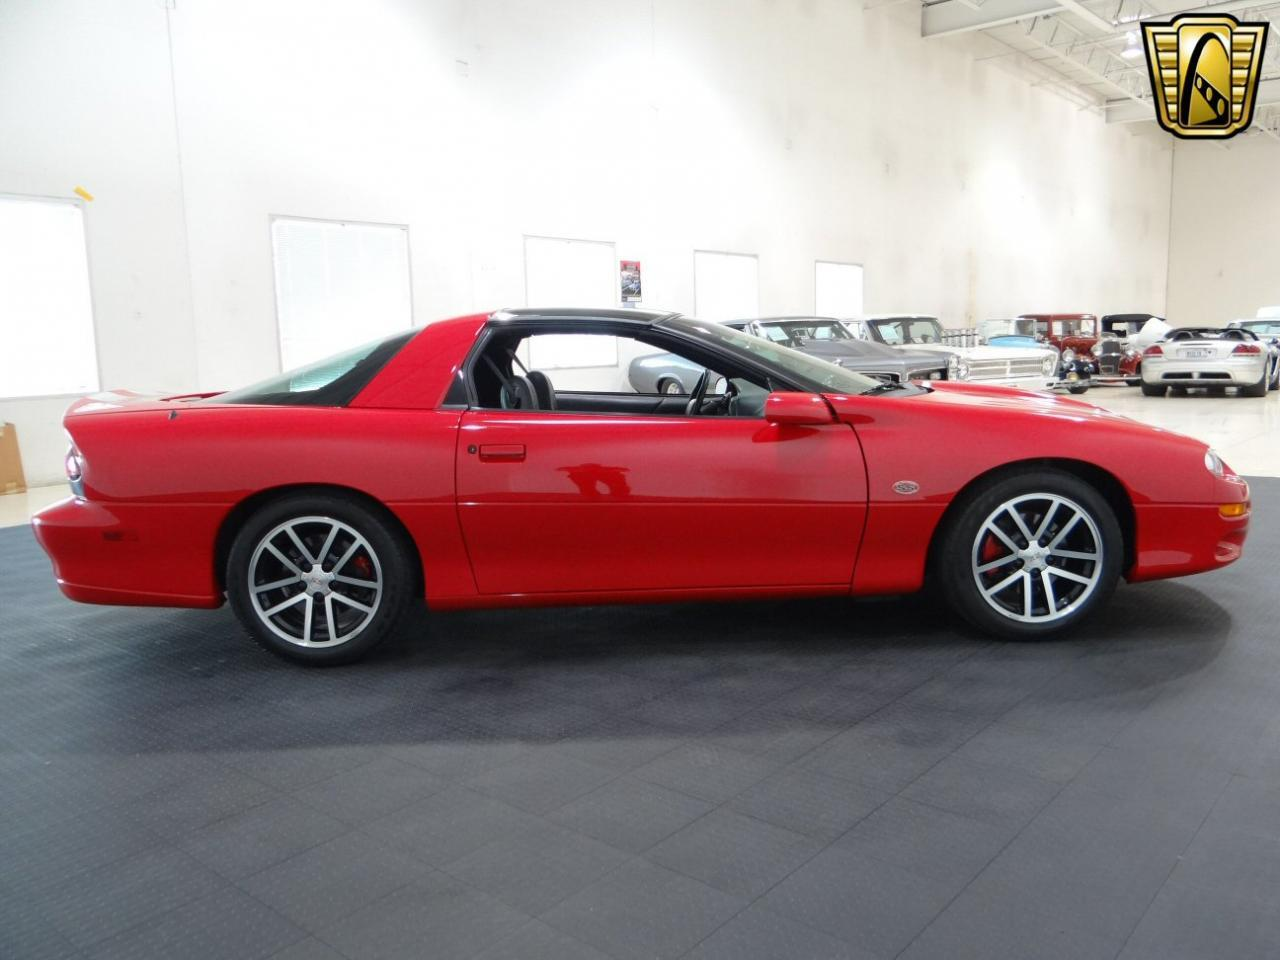 Large Picture of 2002 Chevrolet Camaro - $25,995.00 Offered by Gateway Classic Cars - Chicago - L44H